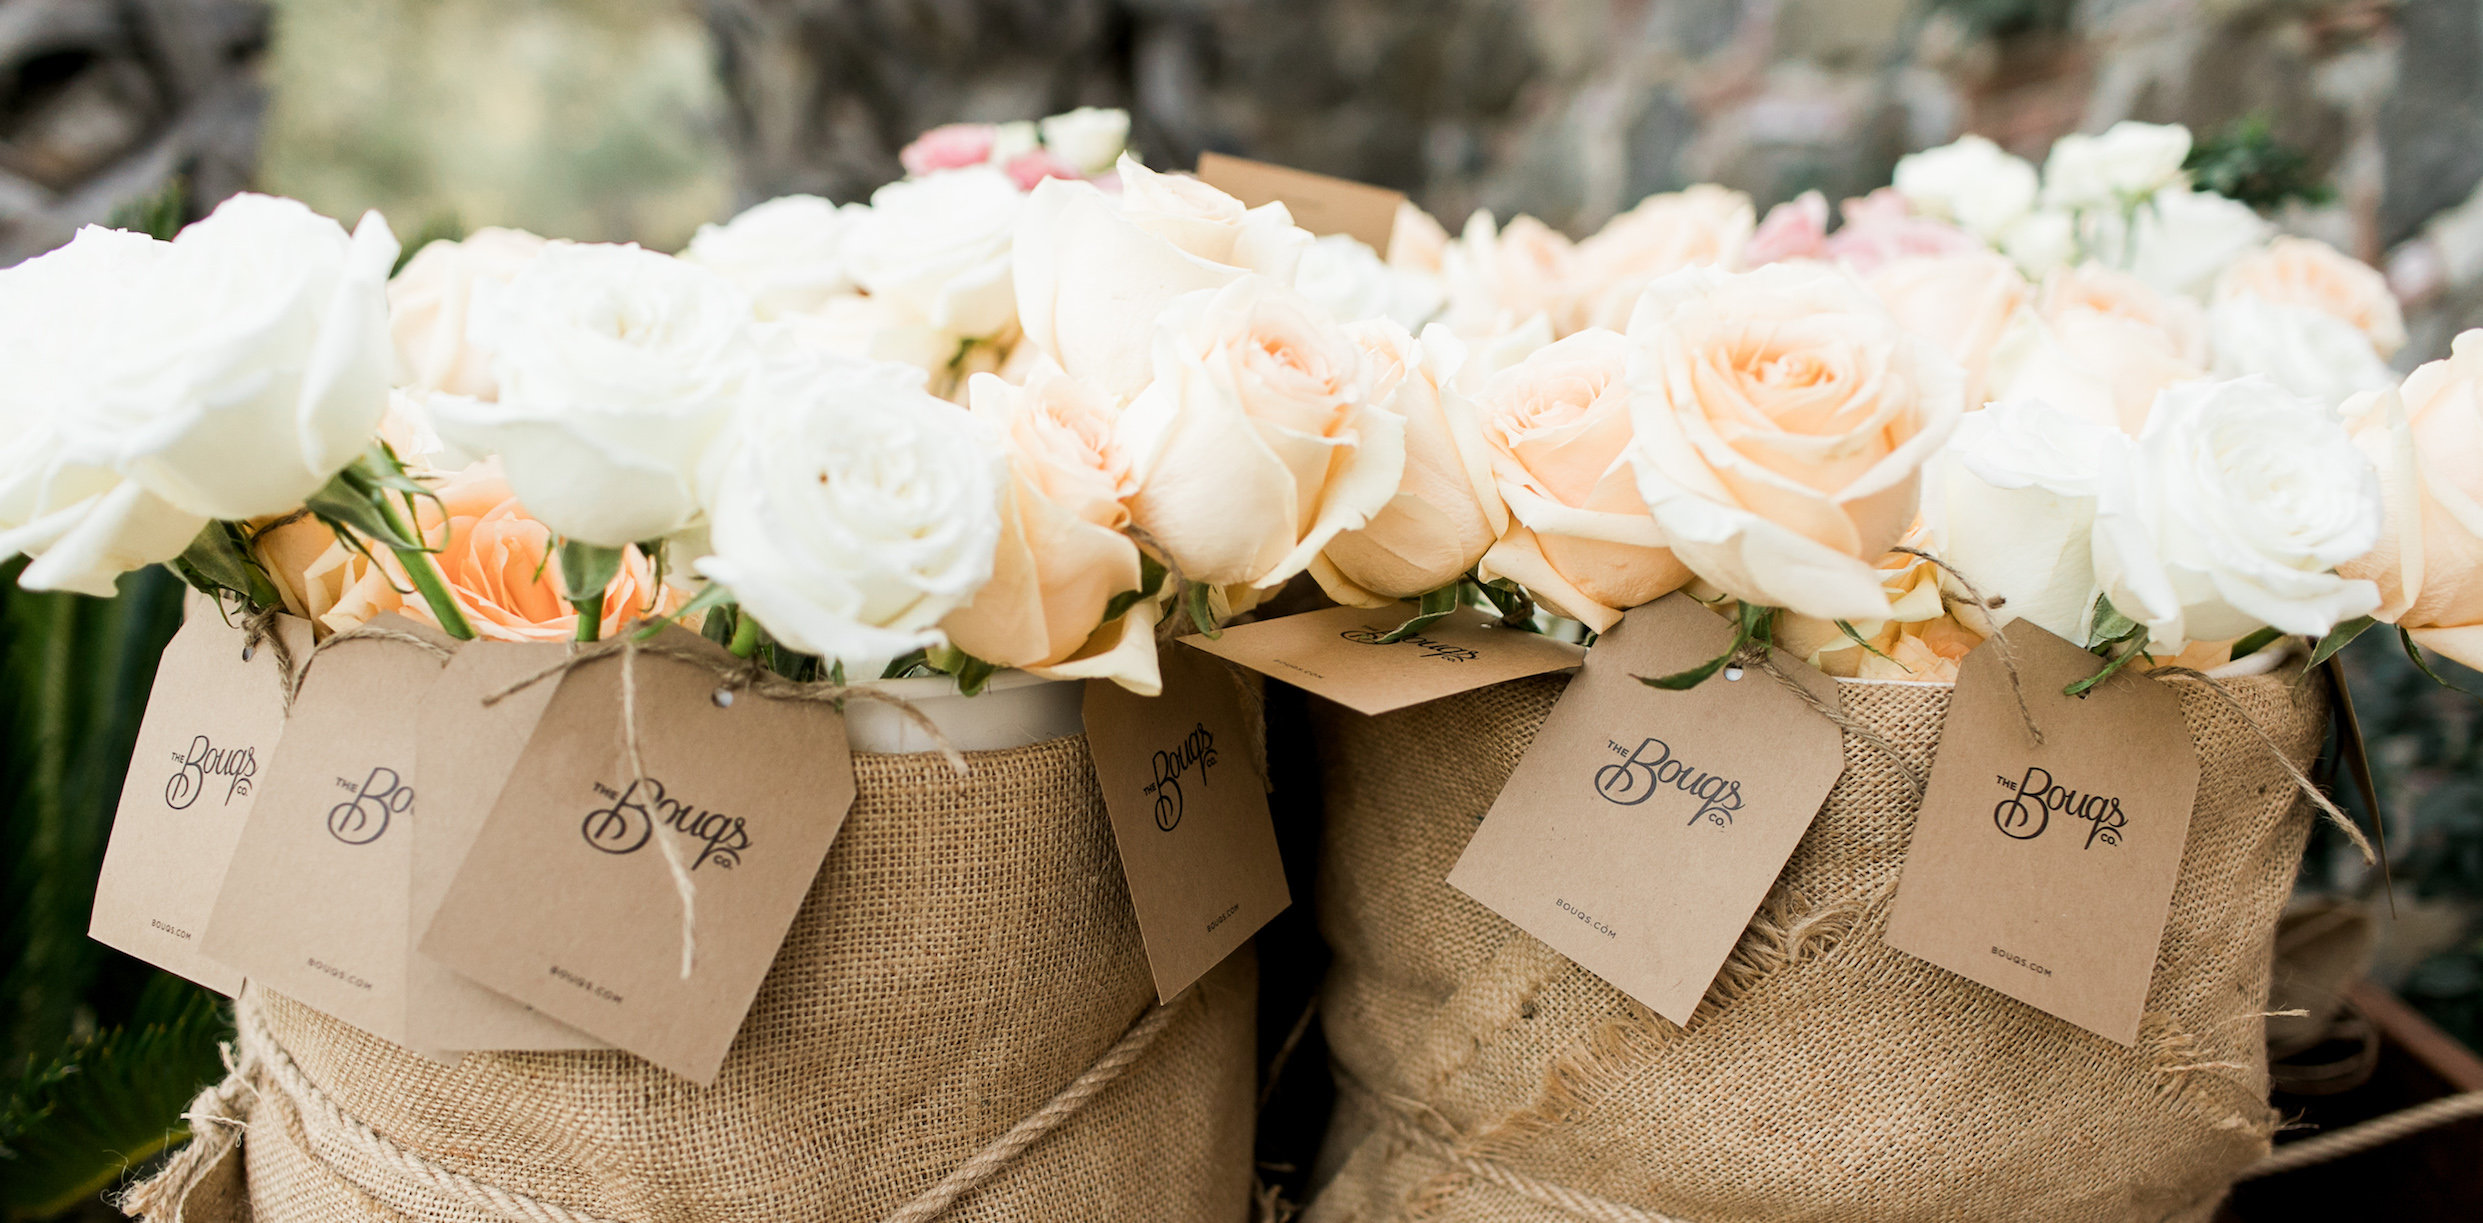 White And Peach Roses In Burlap Sacks